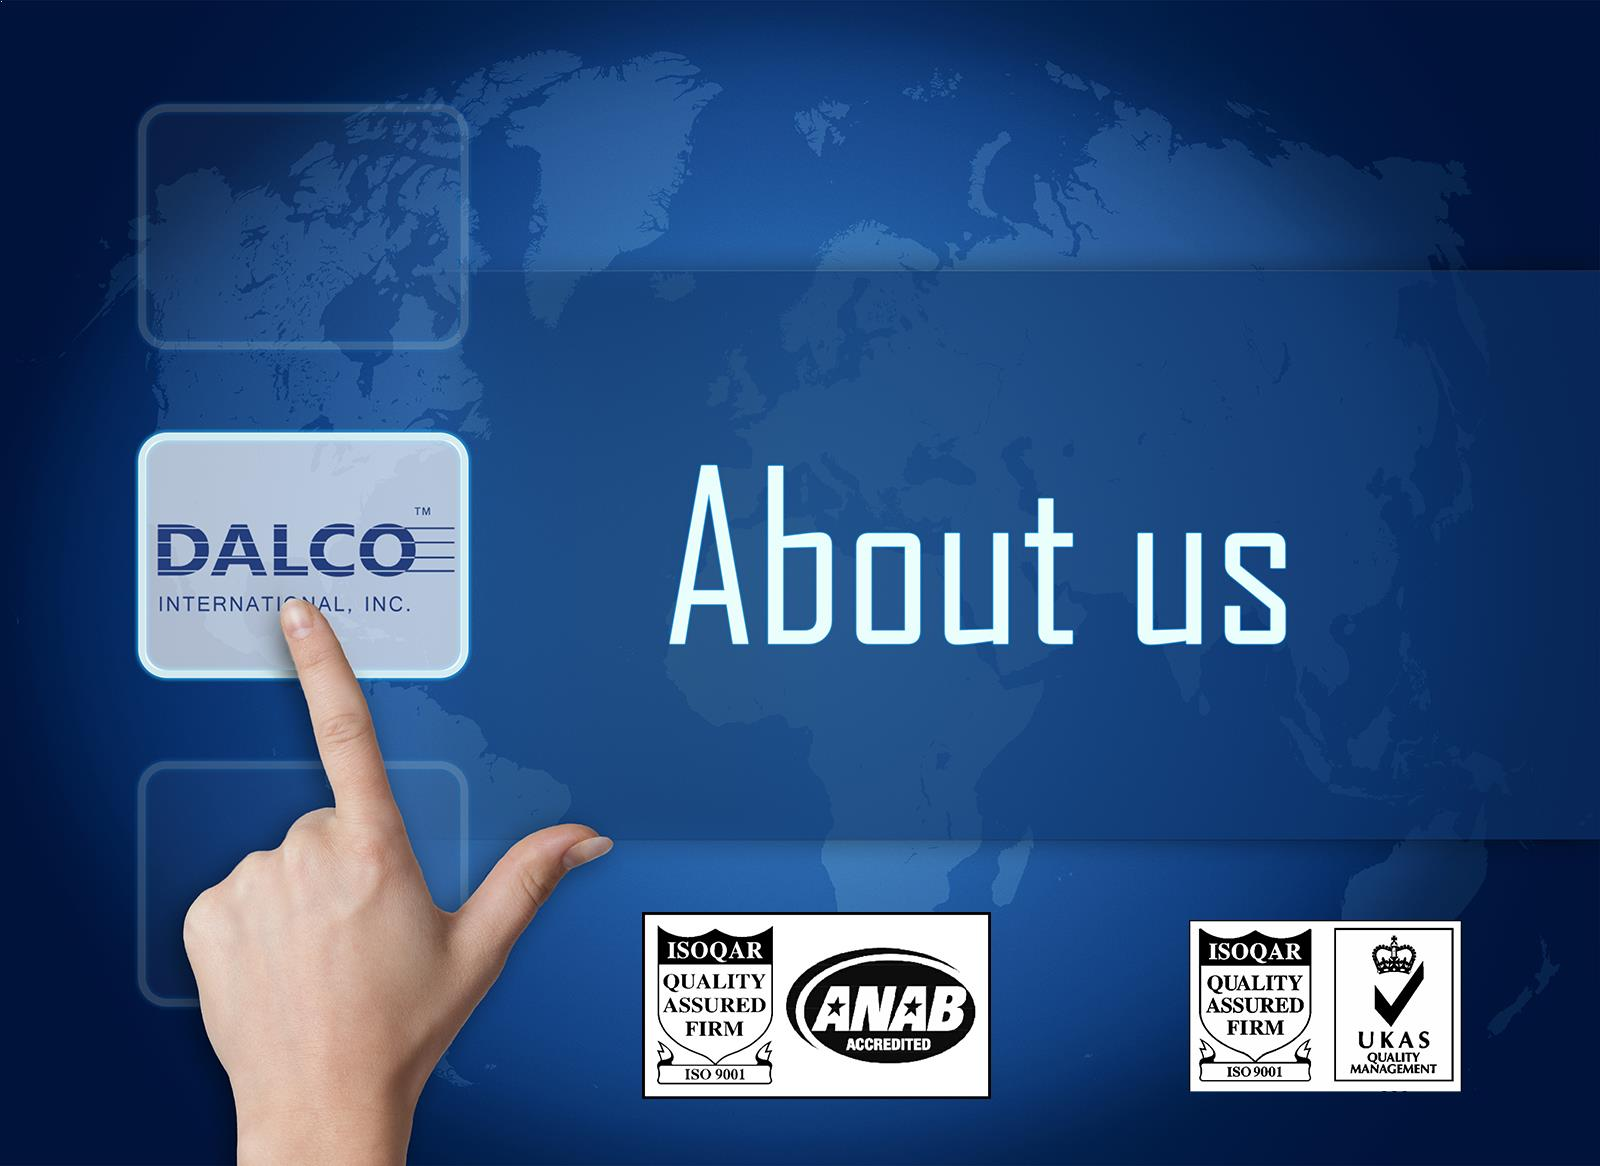 about dalco international